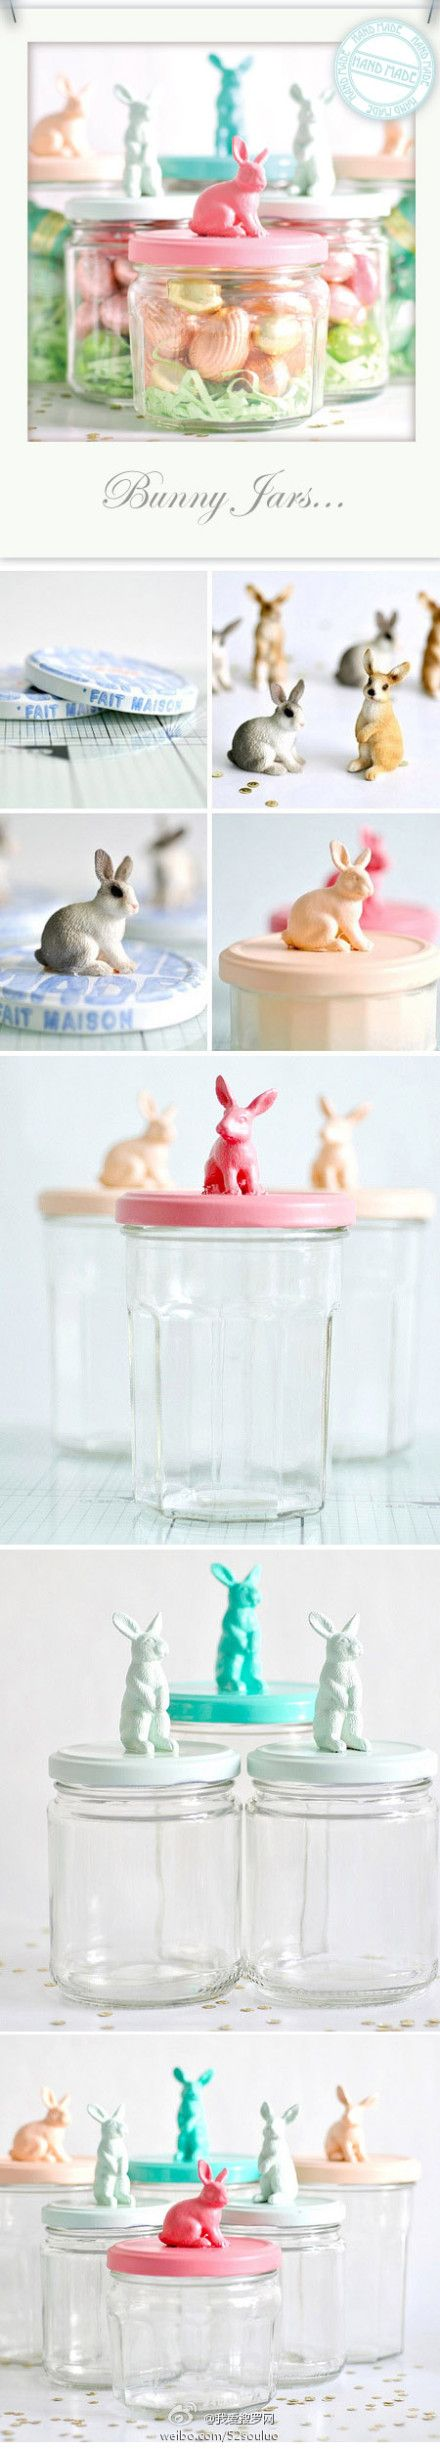 jordans low retro jars  bunny easter